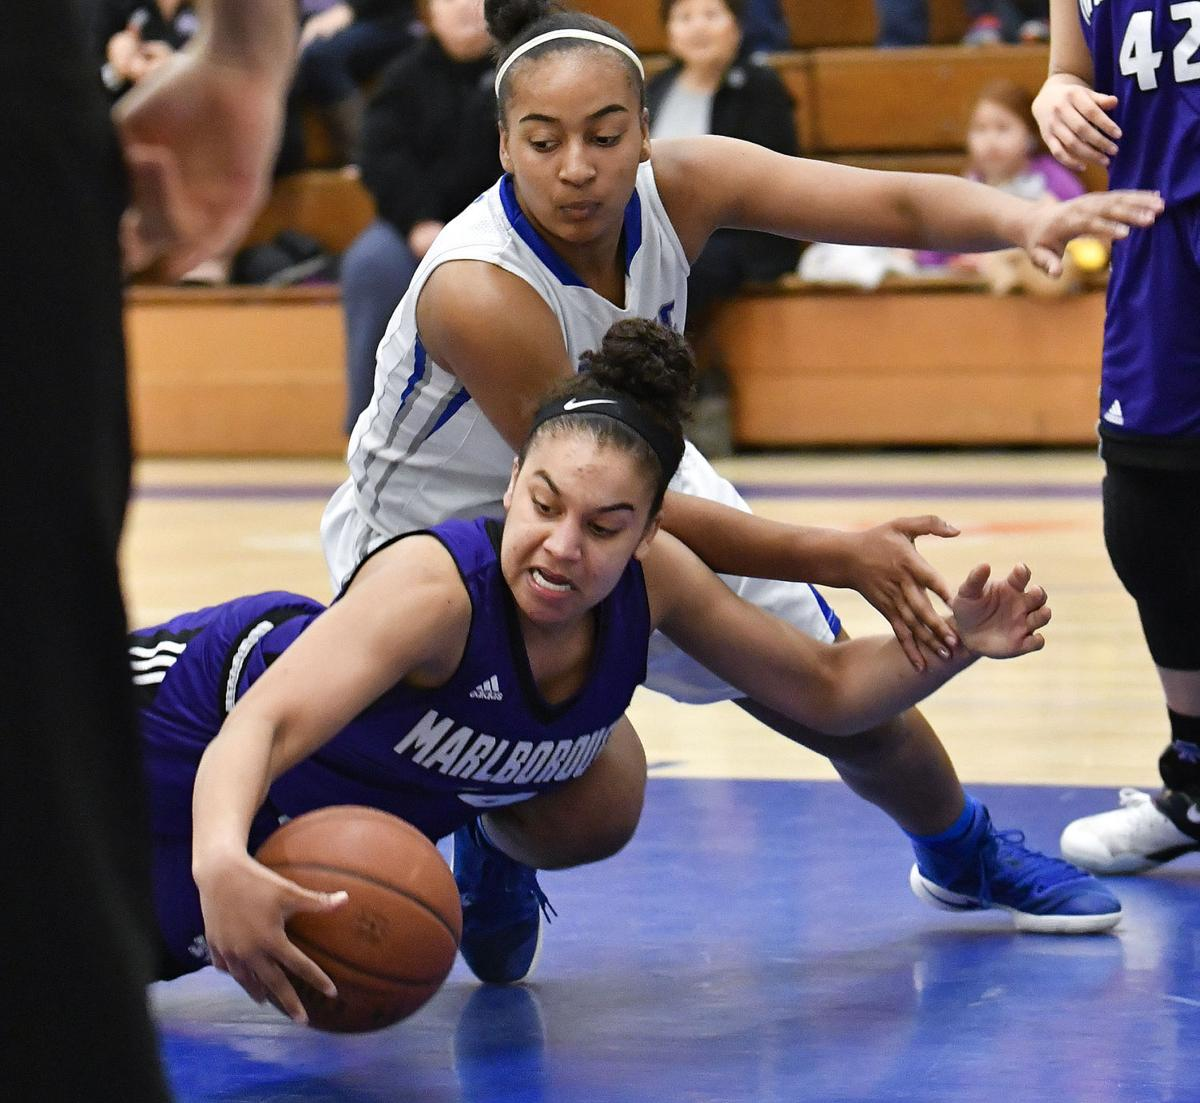 022217 Marlborough LHS g basketball 01.jpg